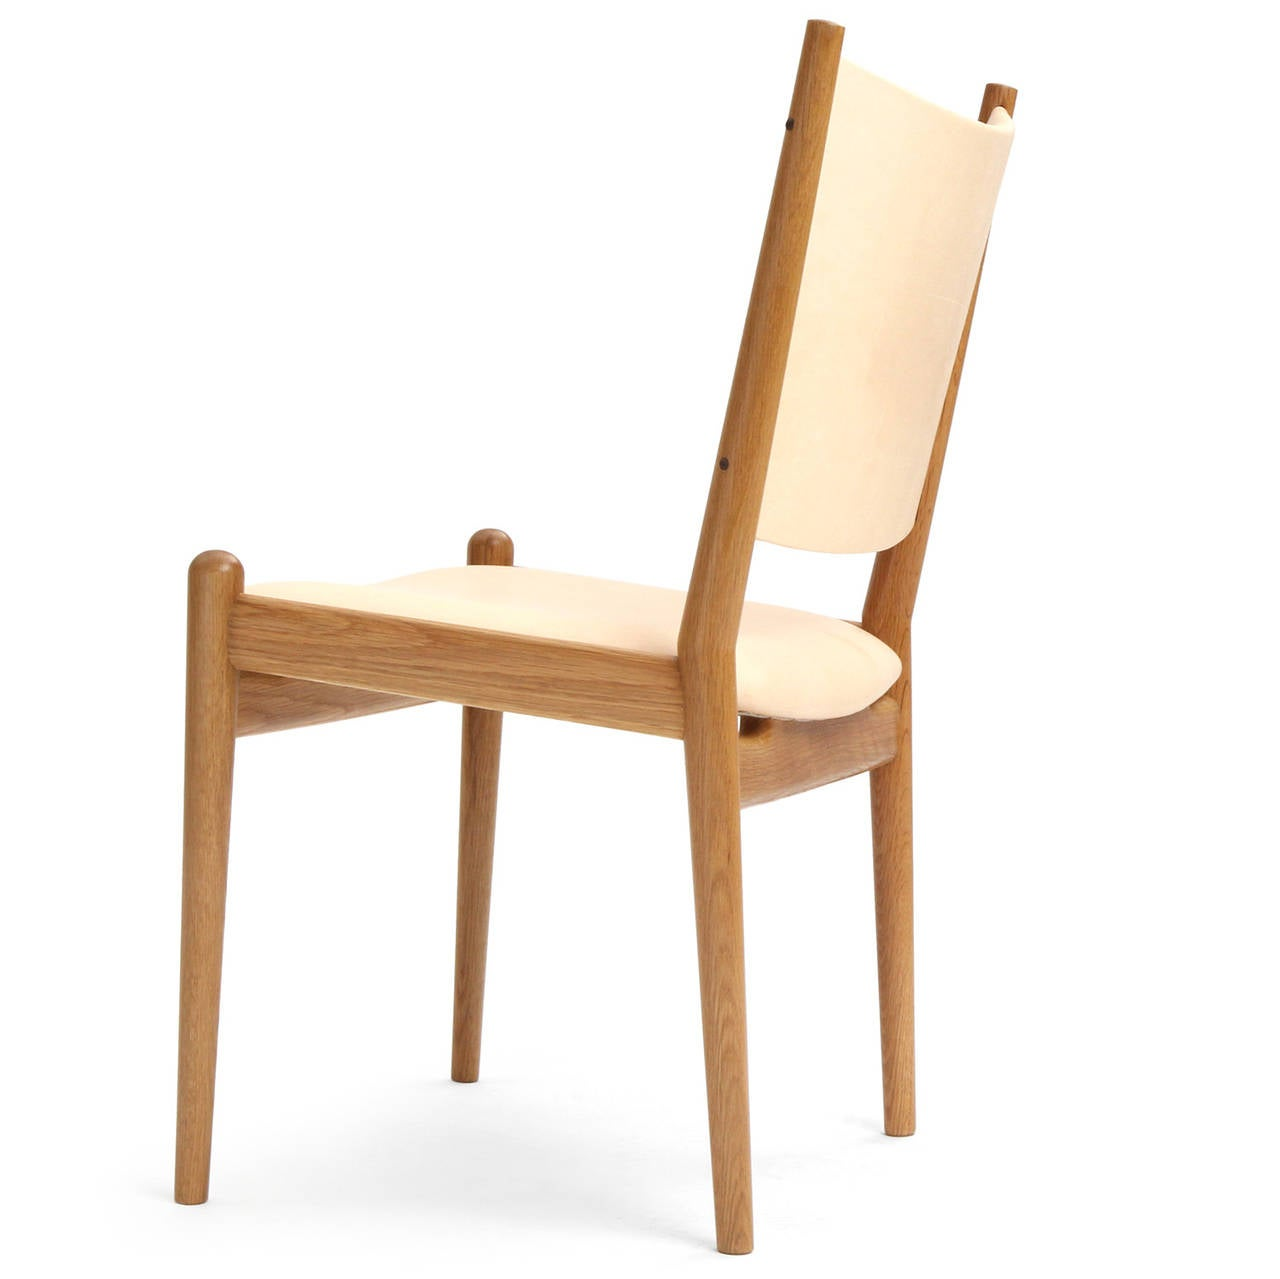 White oak and leather dining chairs by hans wegner at 1stdibs for Wegner dining chair